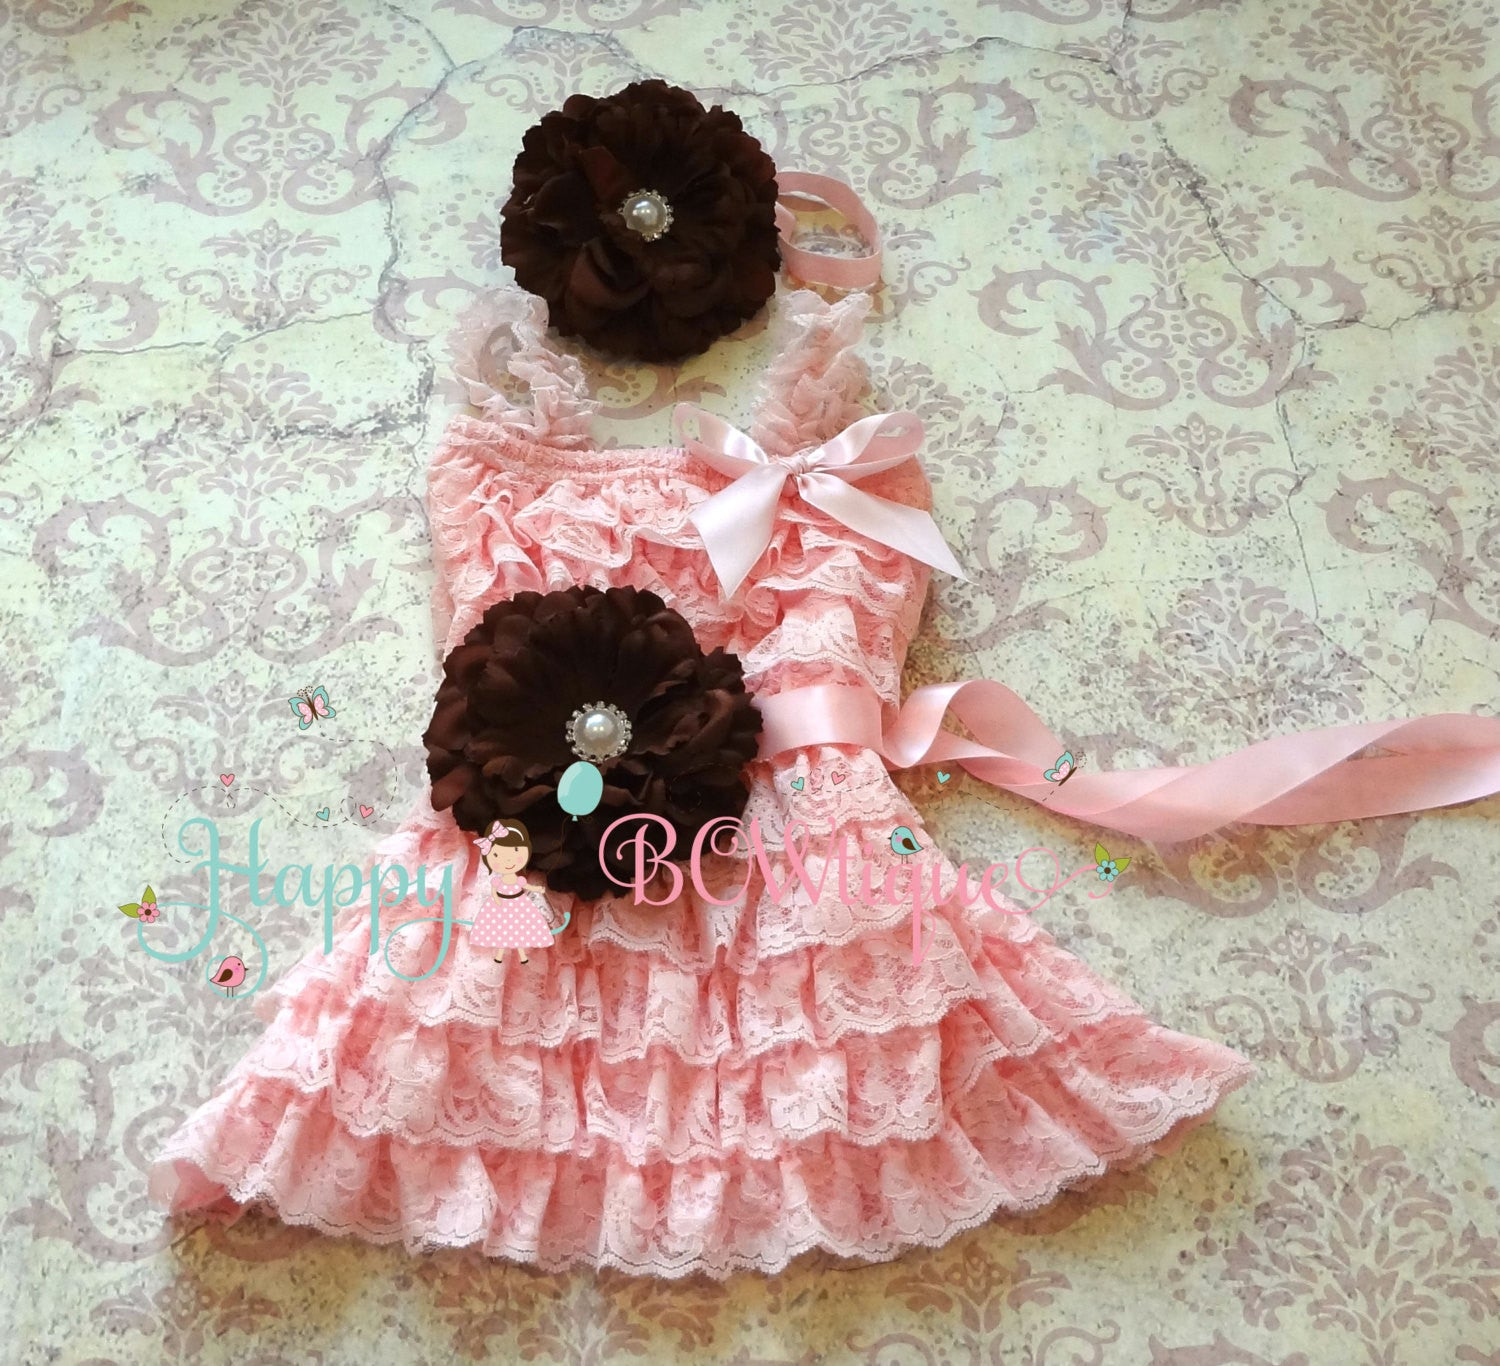 Girl's Pink Petti Lace Dress/ Pretty Baby Girl's Pink Flower Dress set - Happy BOWtique - children's clothing, Baby Girl clothing